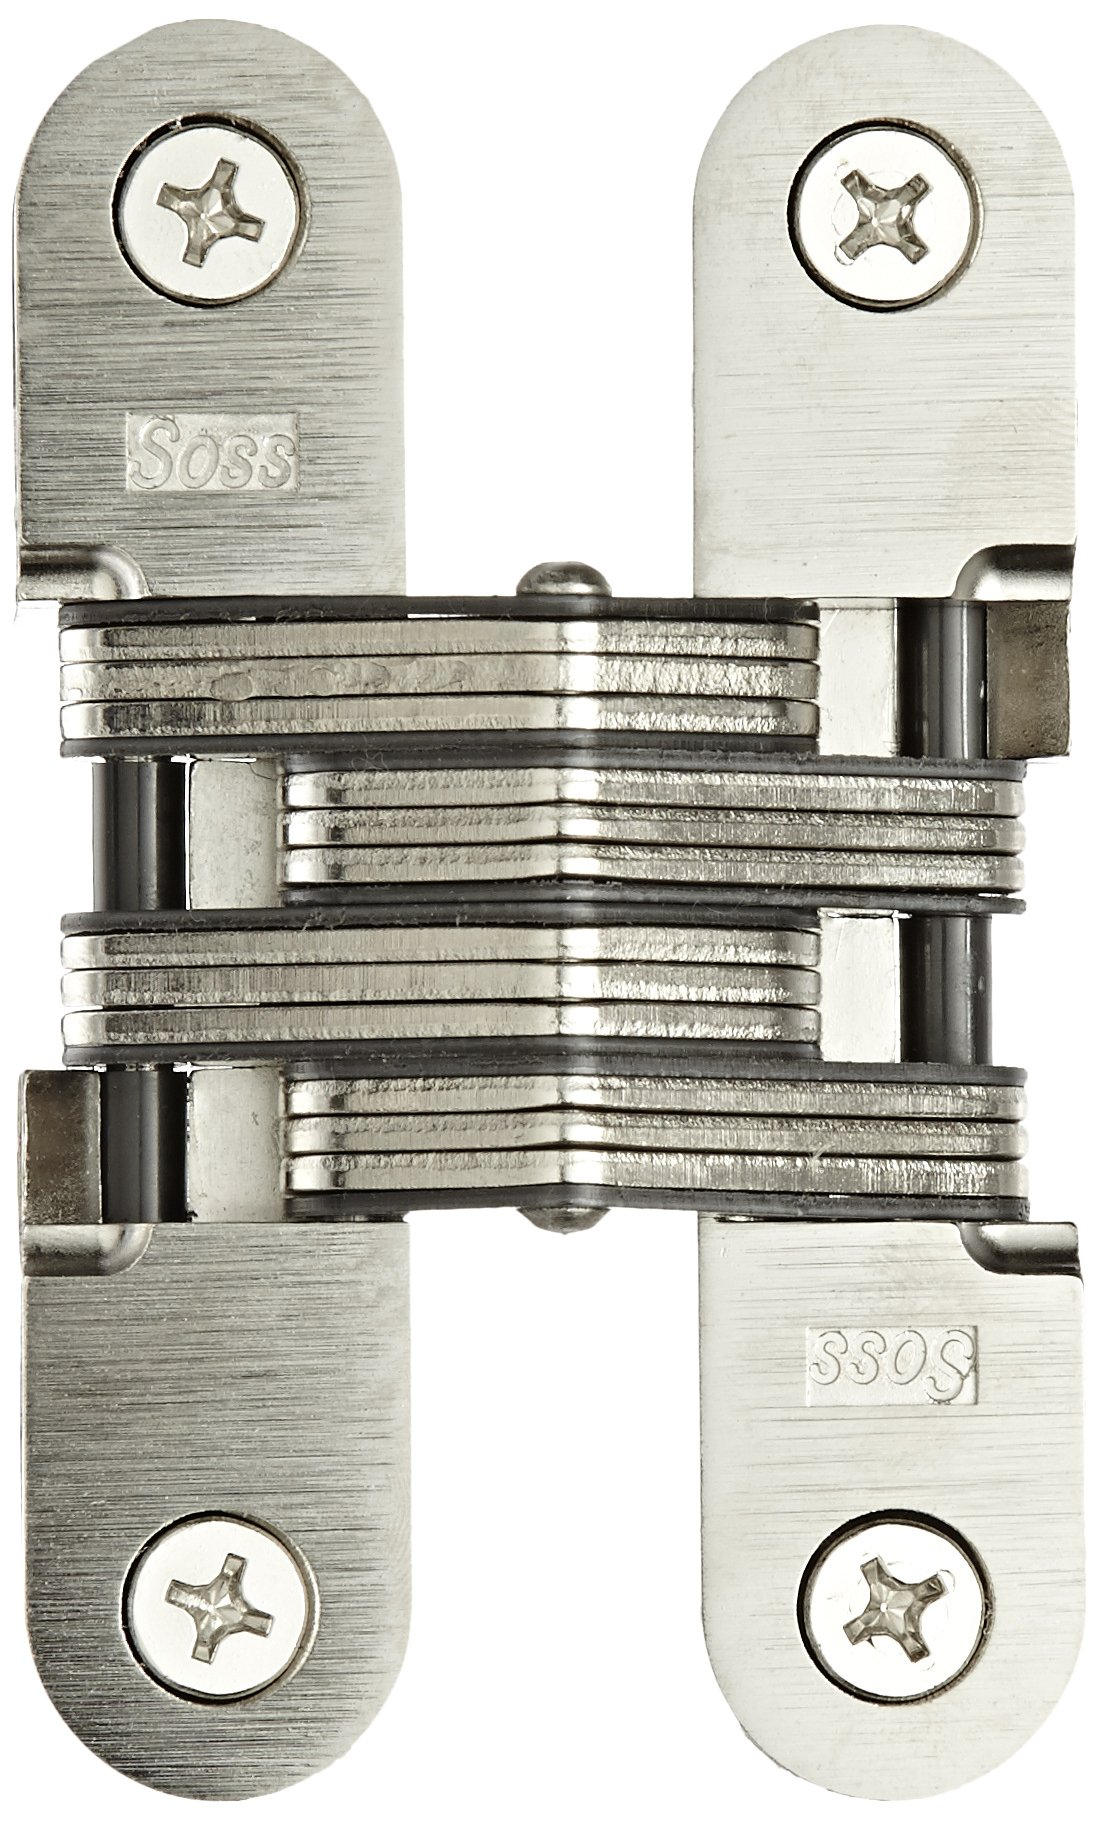 SOSS Mortise Mount Invisible Hinge with 4 Holes, Zinc, Satin Nickel Finish, 4-5/8'' Leaf Height, 1'' Leaf Width, 1-7/16'' Leaf Thickness, 14 x 1-1/2'' Screw Size